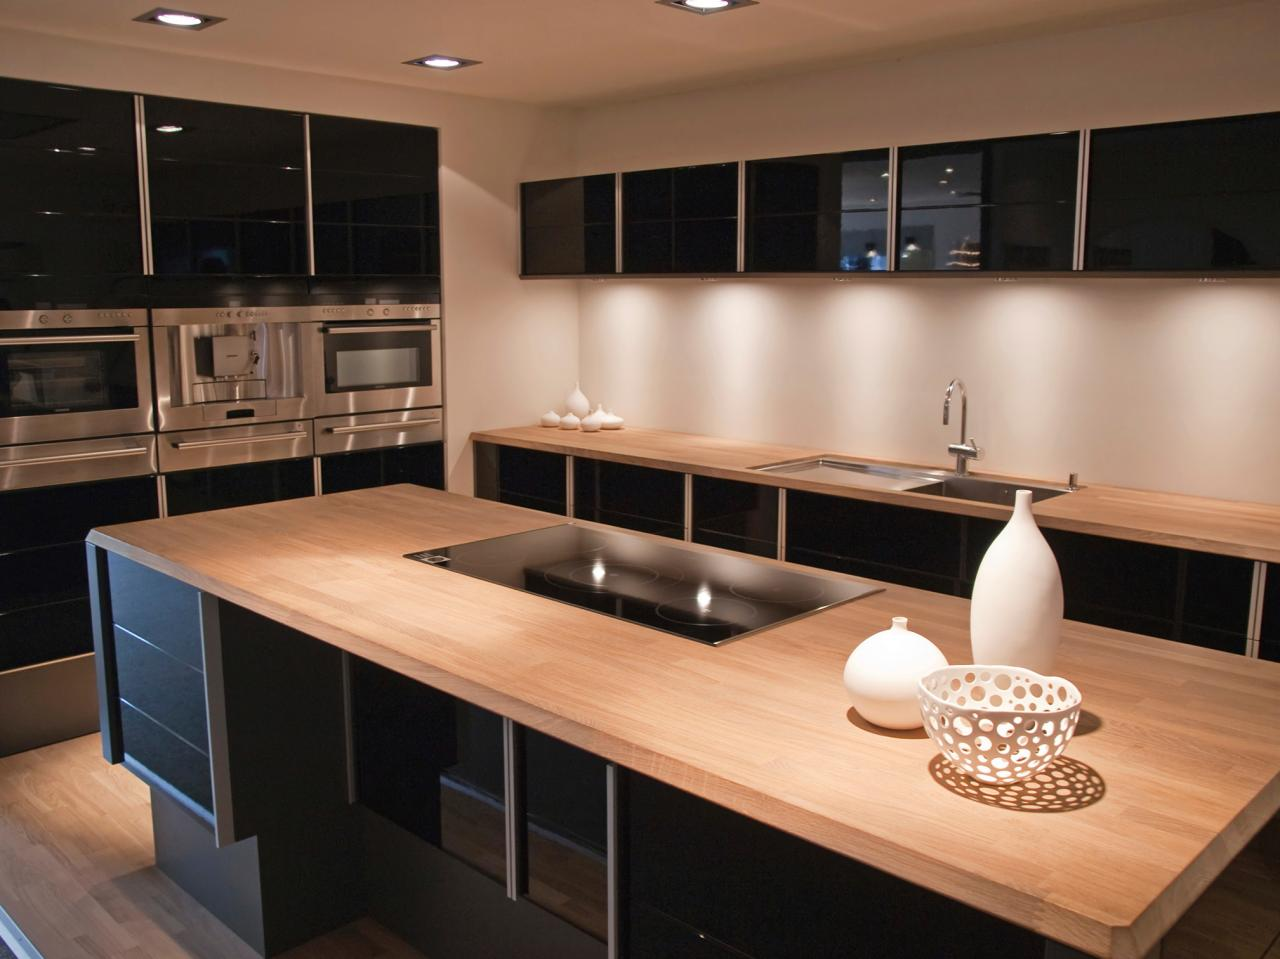 Natural Wooden Kitchen Countertops for a Trendy Look ... on Modern Kitchen Countertop Decor  id=75486